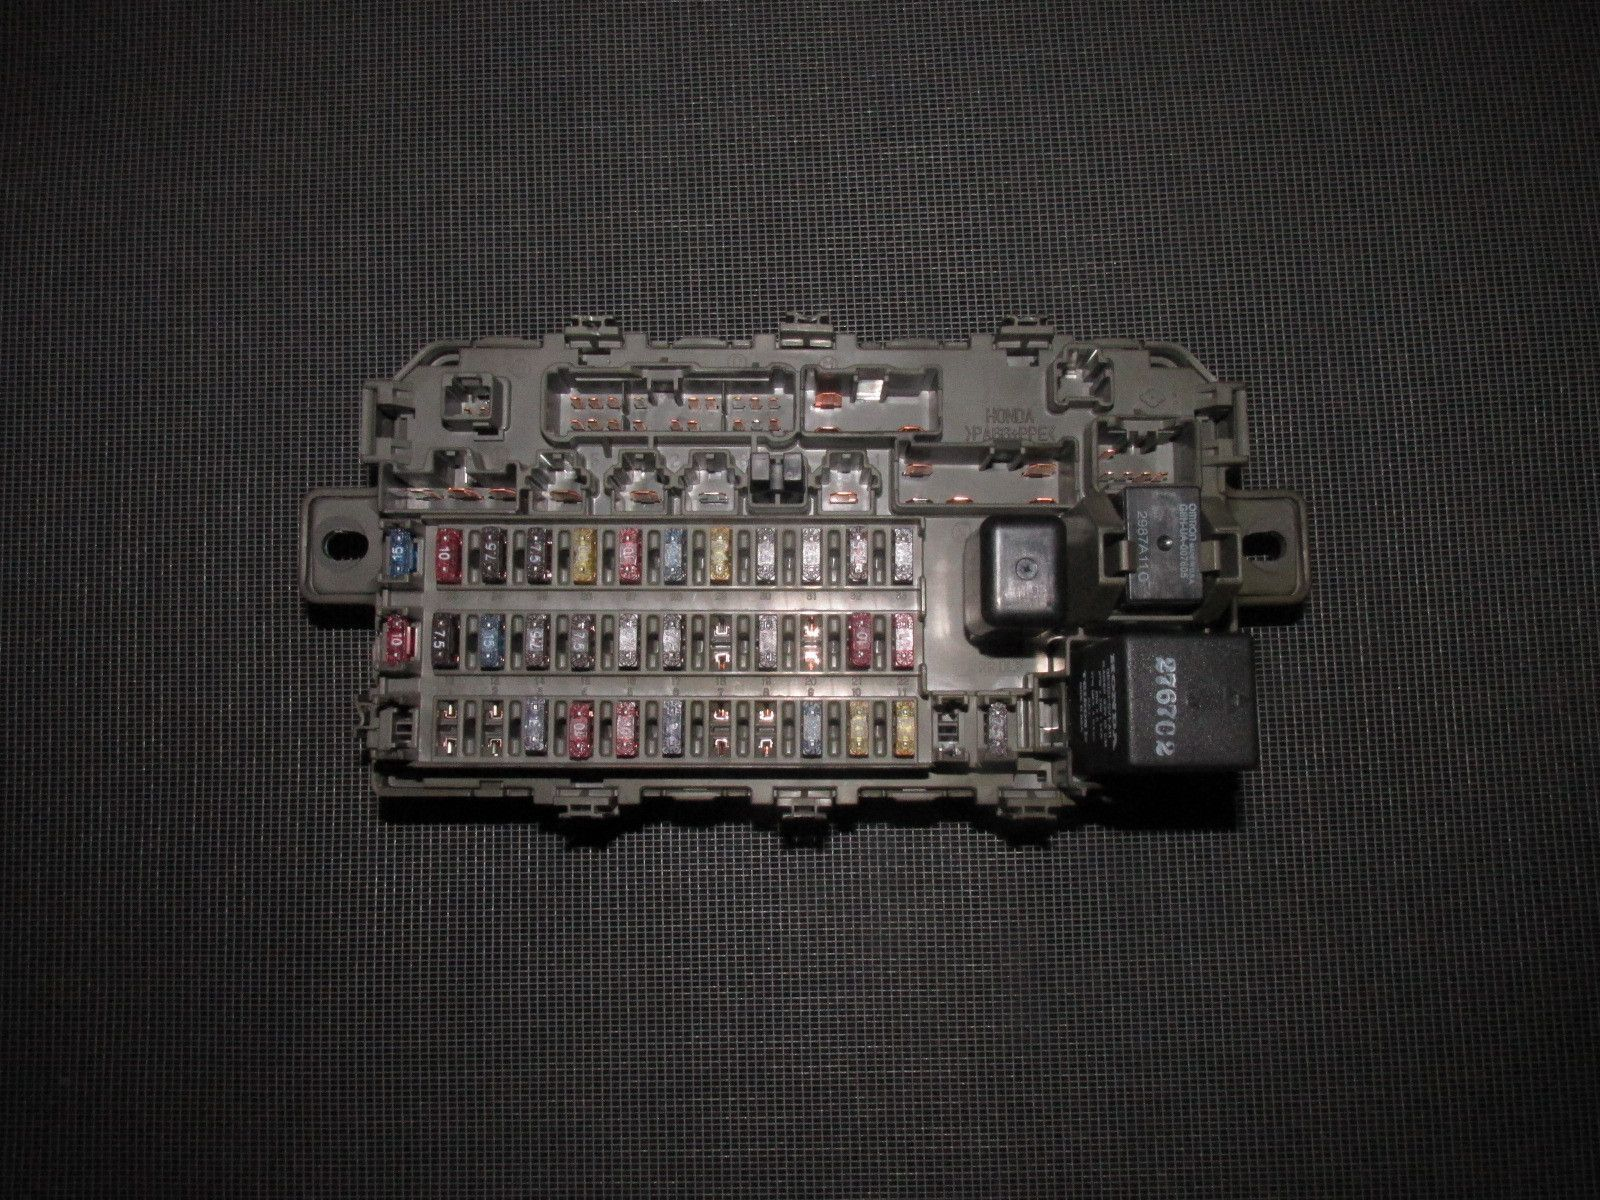 99 Honda Civic Fuse Panel Wiring Diagram Electricity Basics 101 98 Crv 96 97 00 Oem Interior Box Autopartone Com Rh Pinterest 1997 Passport 1999